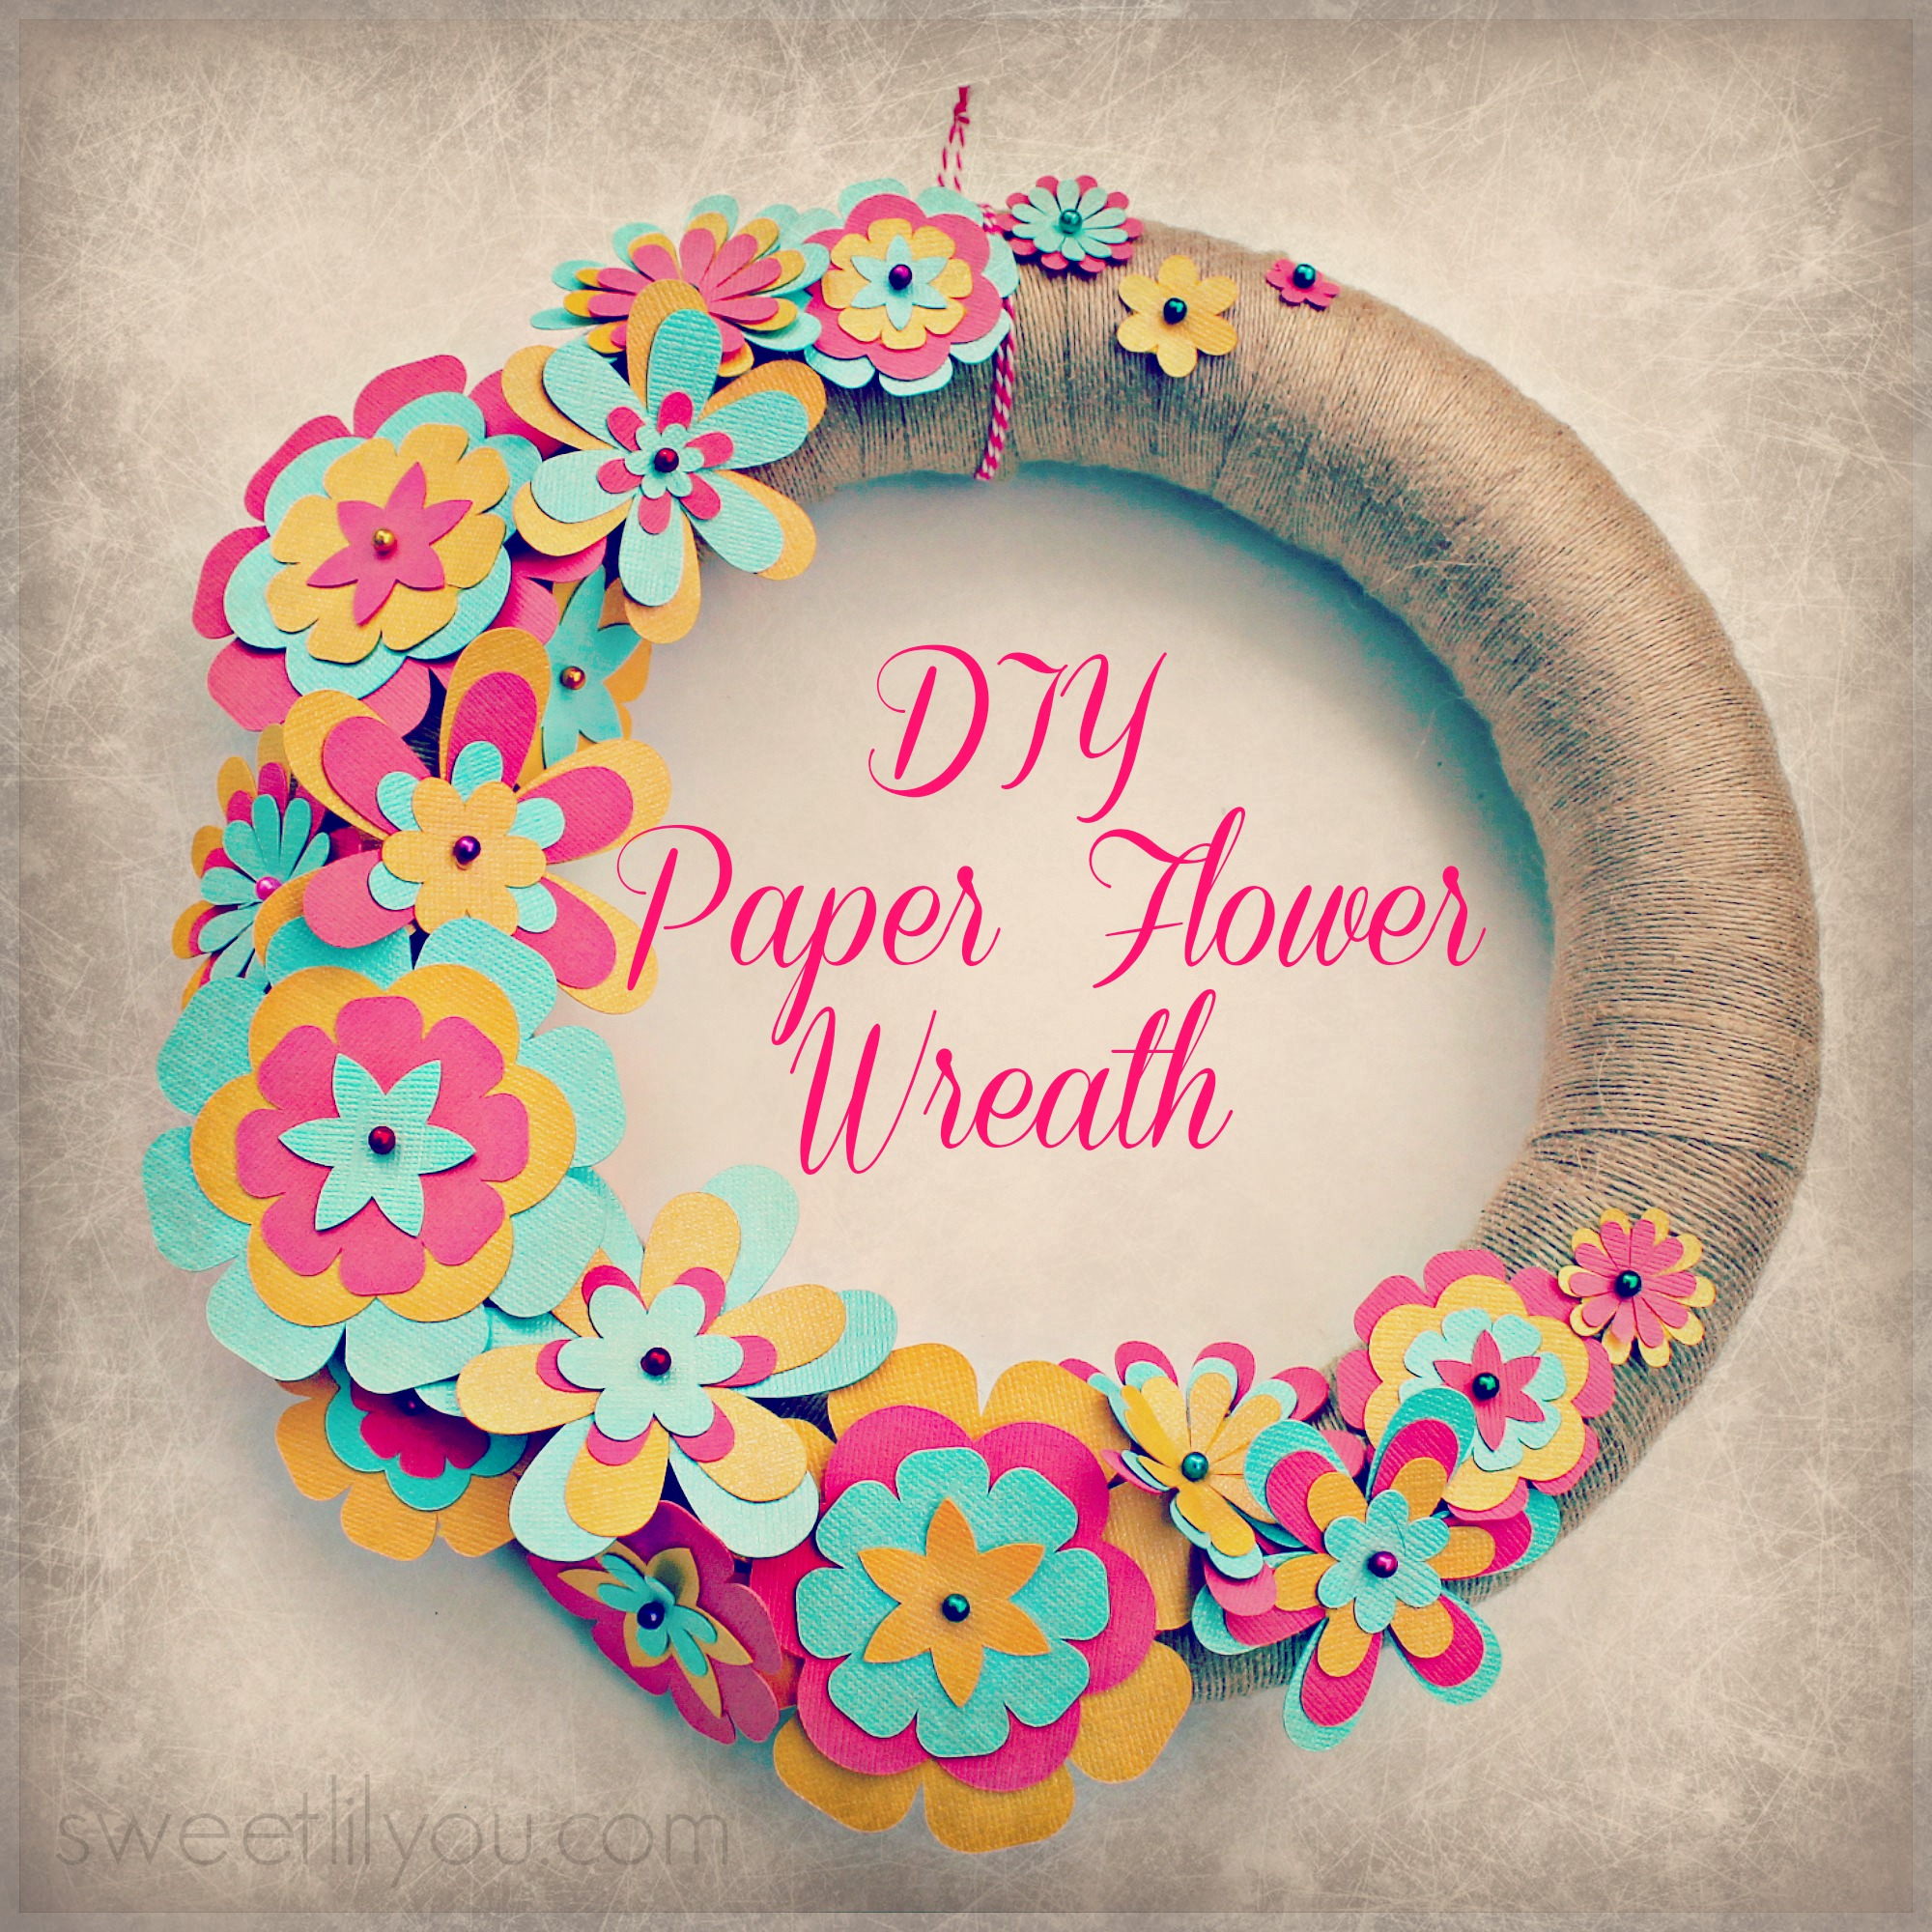 Easy diy paper flower wreath sweet lil you mightylinksfo